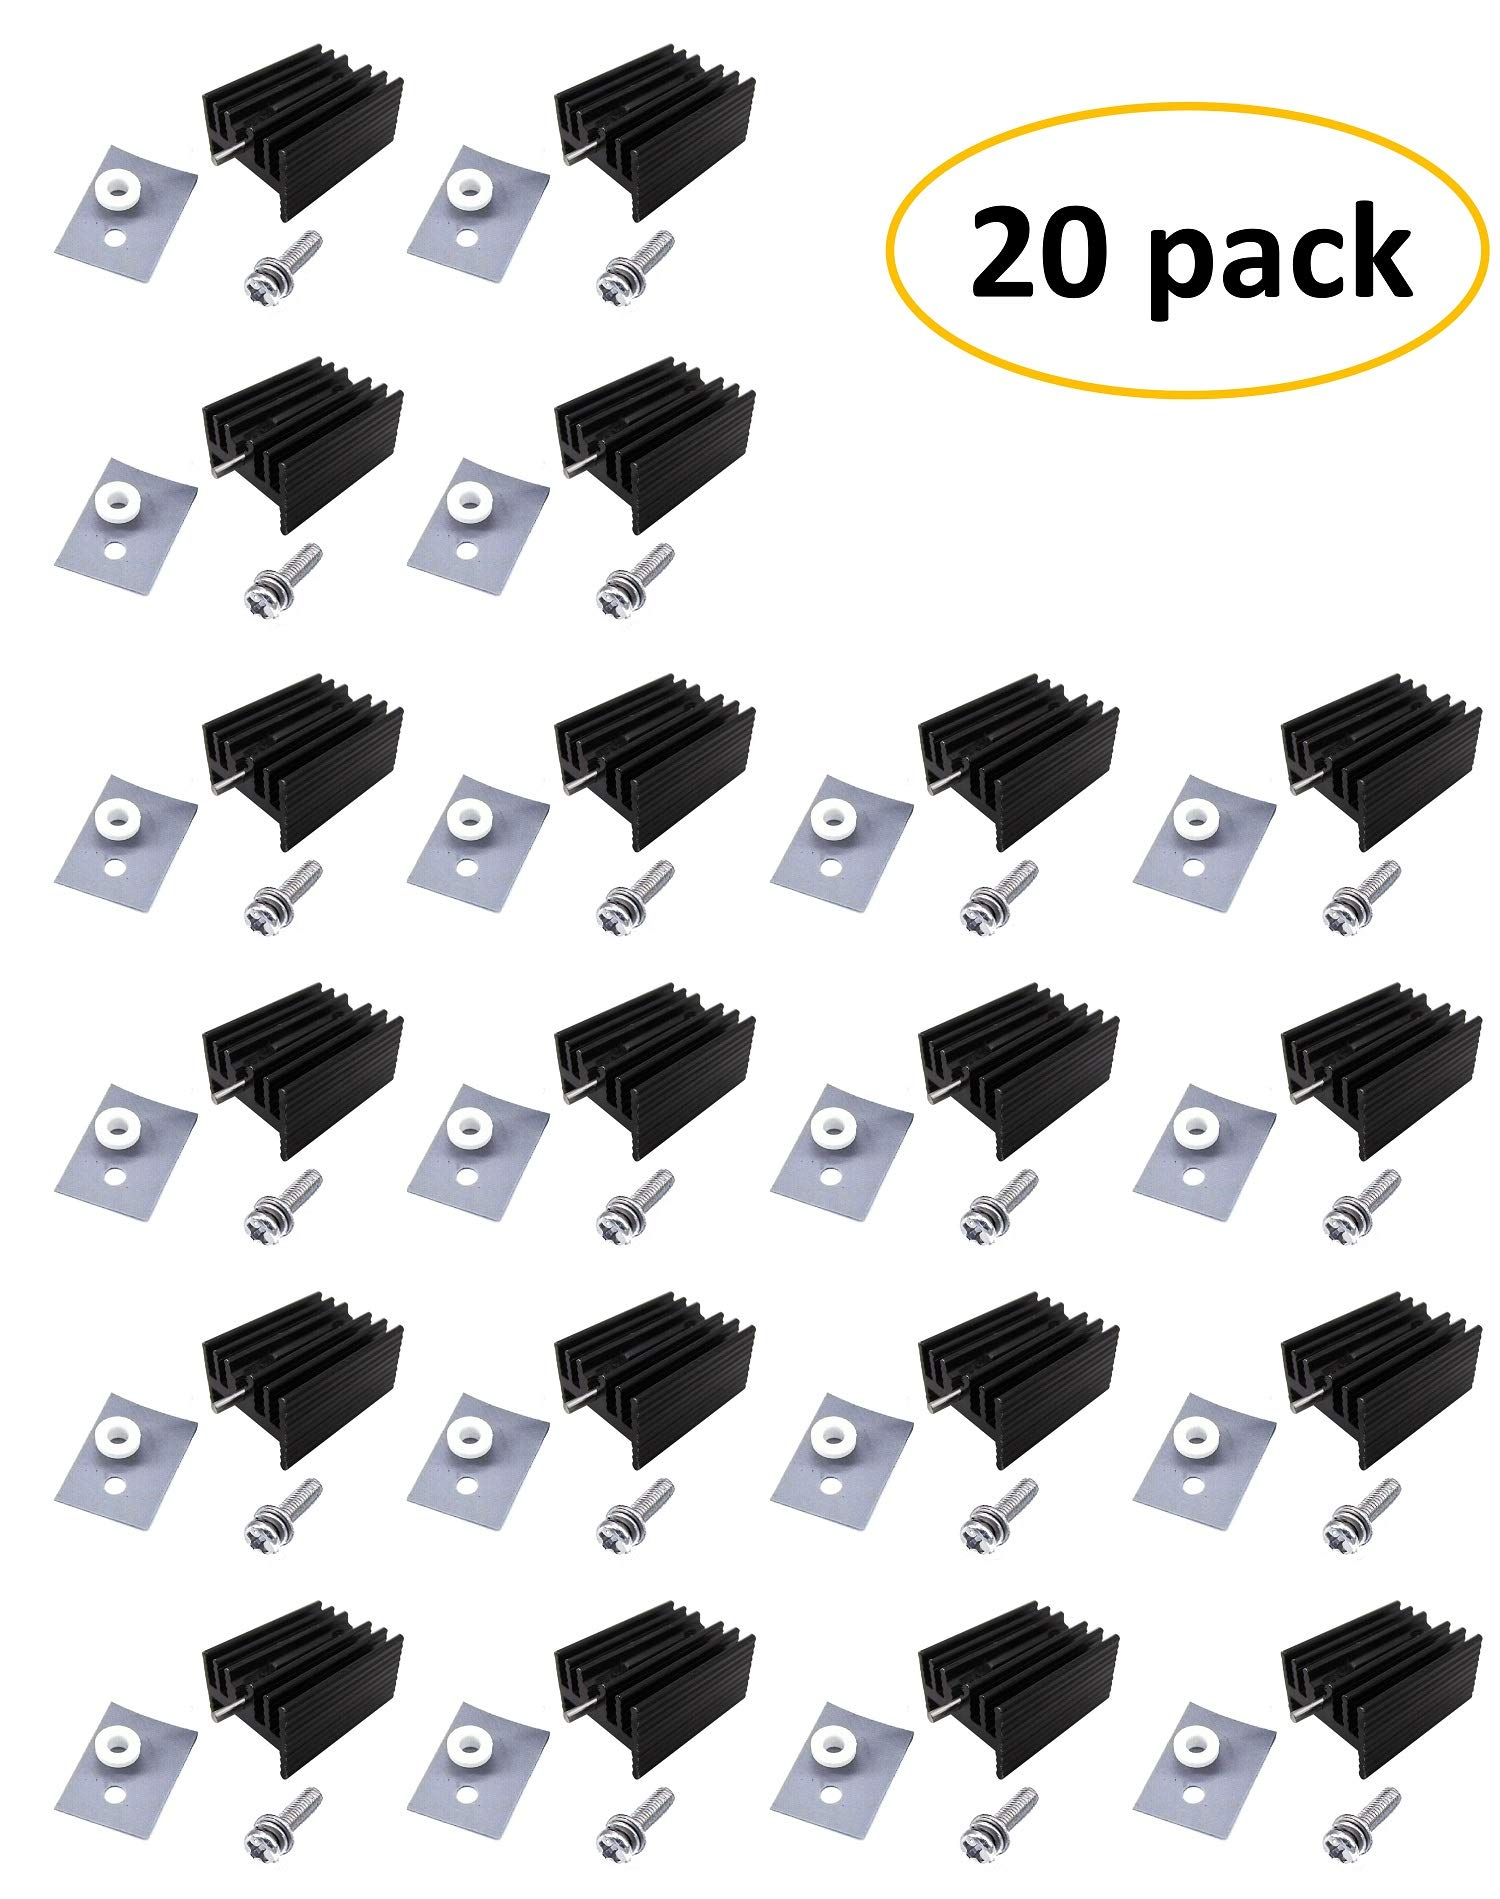 Easycargo TO-220 Heatsink + Insulator/Mounting kits (TO220 Heat sink +Screw+Washer+Bushing+Insulator rubberized Silicone) for LM78XX voltage regulator, MOSFET transistor 20mmx15mmx11mm (Black 20 pack) by Easycargo (Image #1)